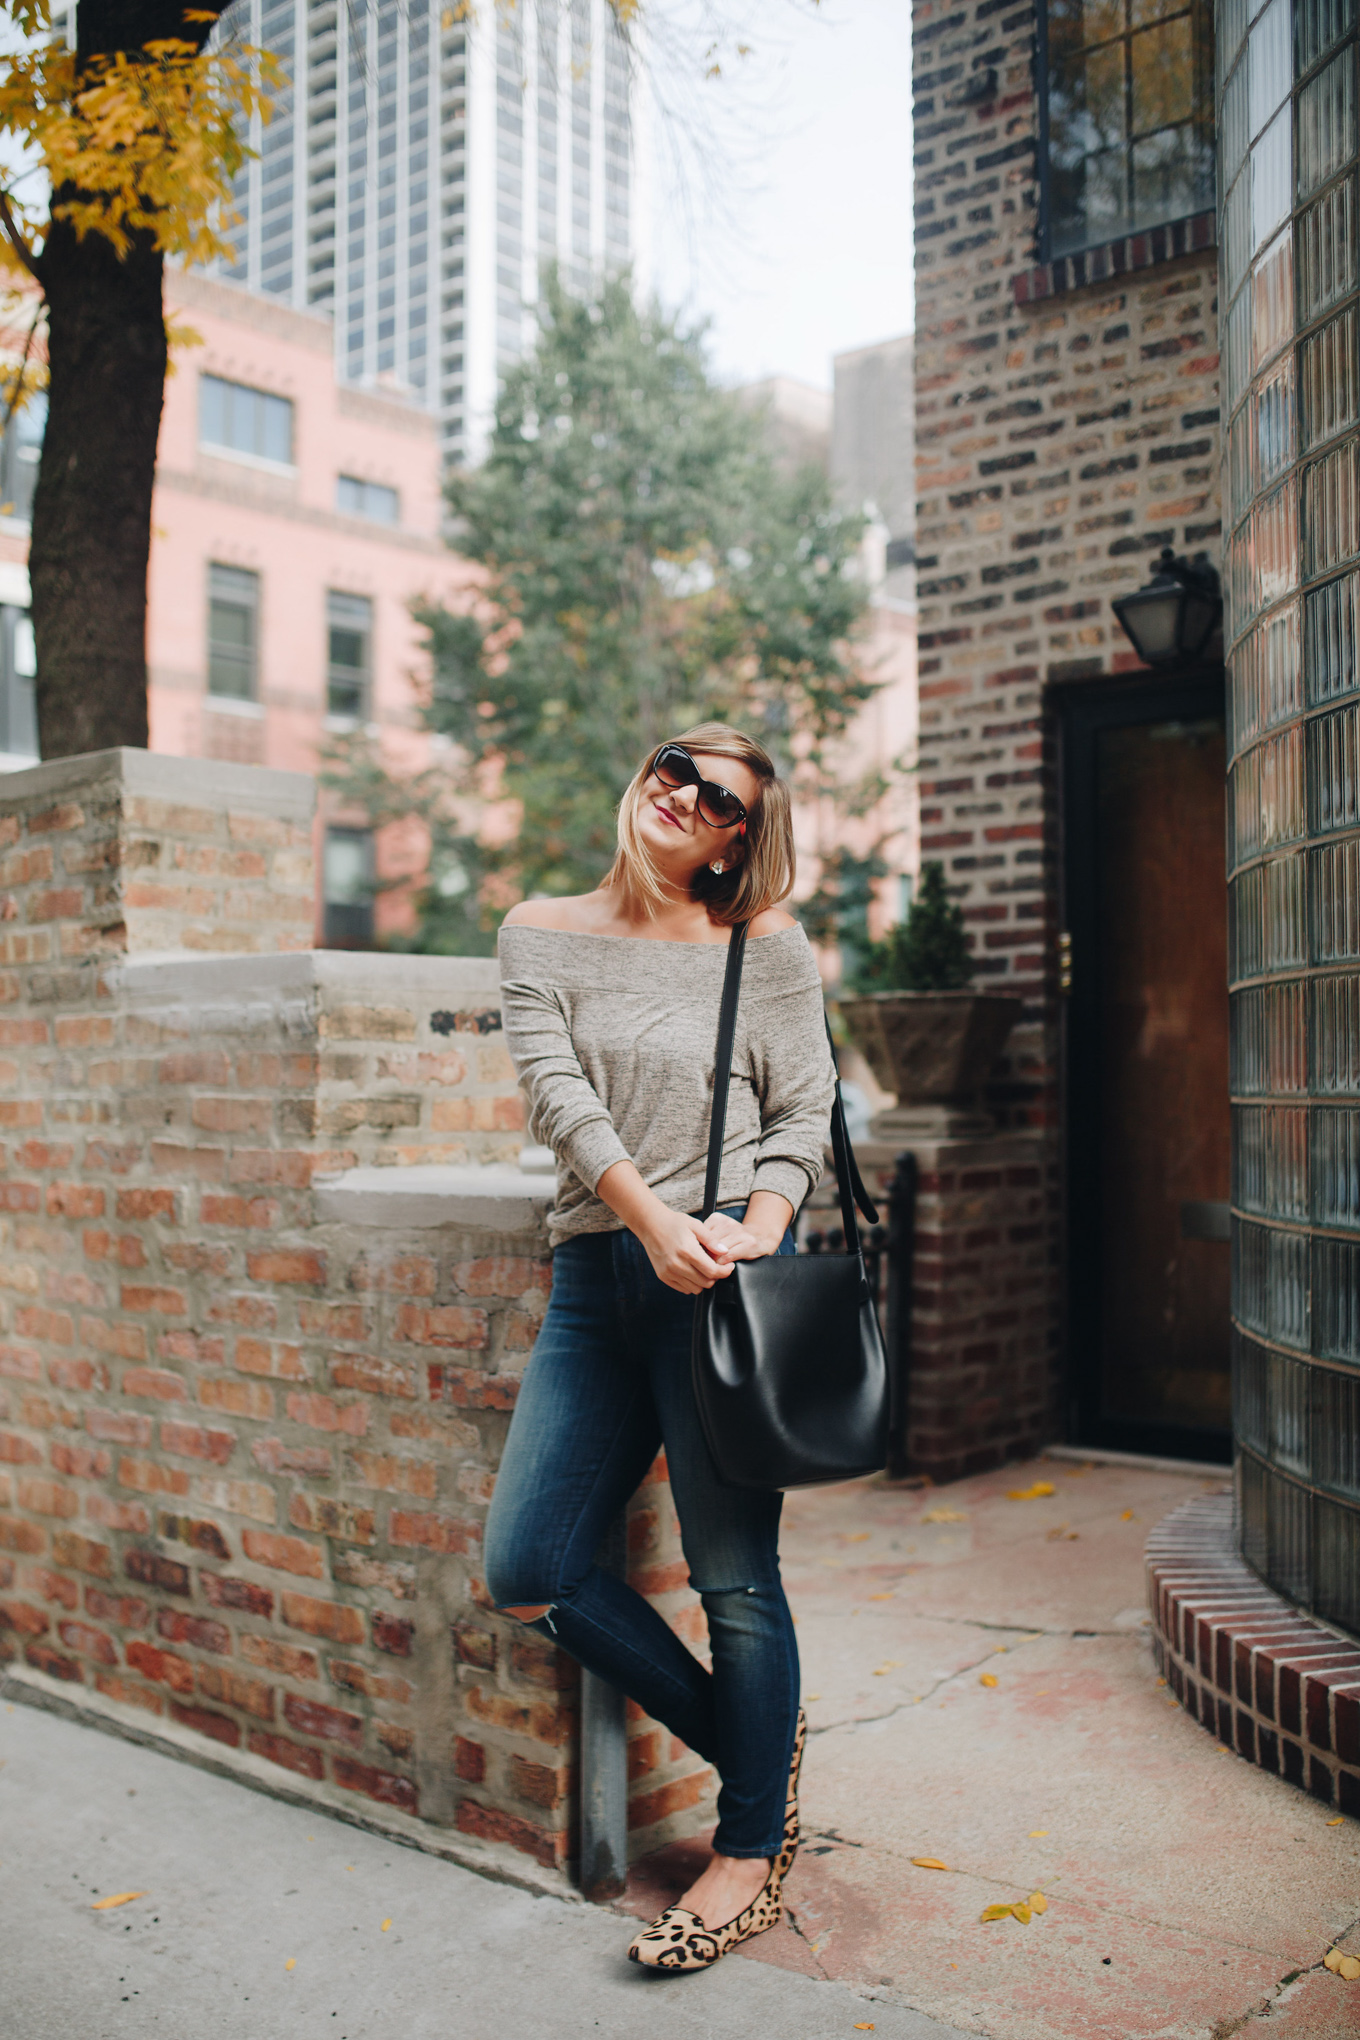 Shopbop Sale / Off the Shoulder Sweater and J Brand Jeans - Lake Shore Lady